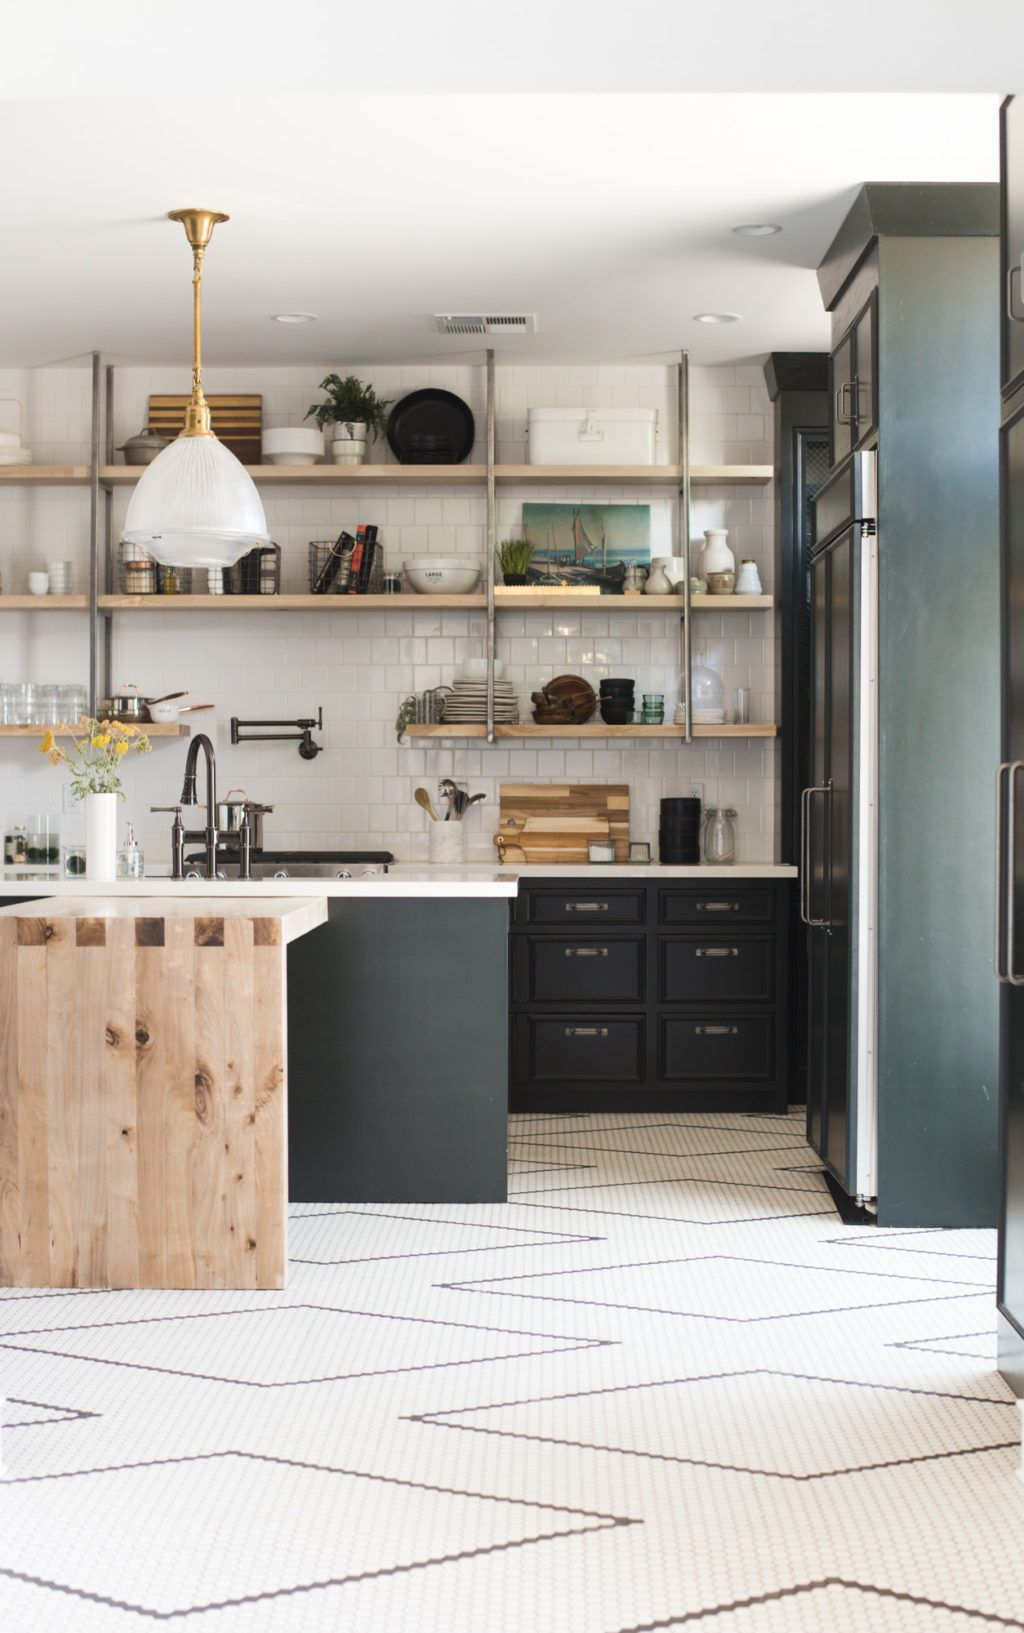 Dark Green Kitchen Cabinets And Hand Laid Black And White Tile Flooring It S A Diy With A Tutori Green Kitchen Cabinets Kitchen Floor Tile White Kitchen Floor